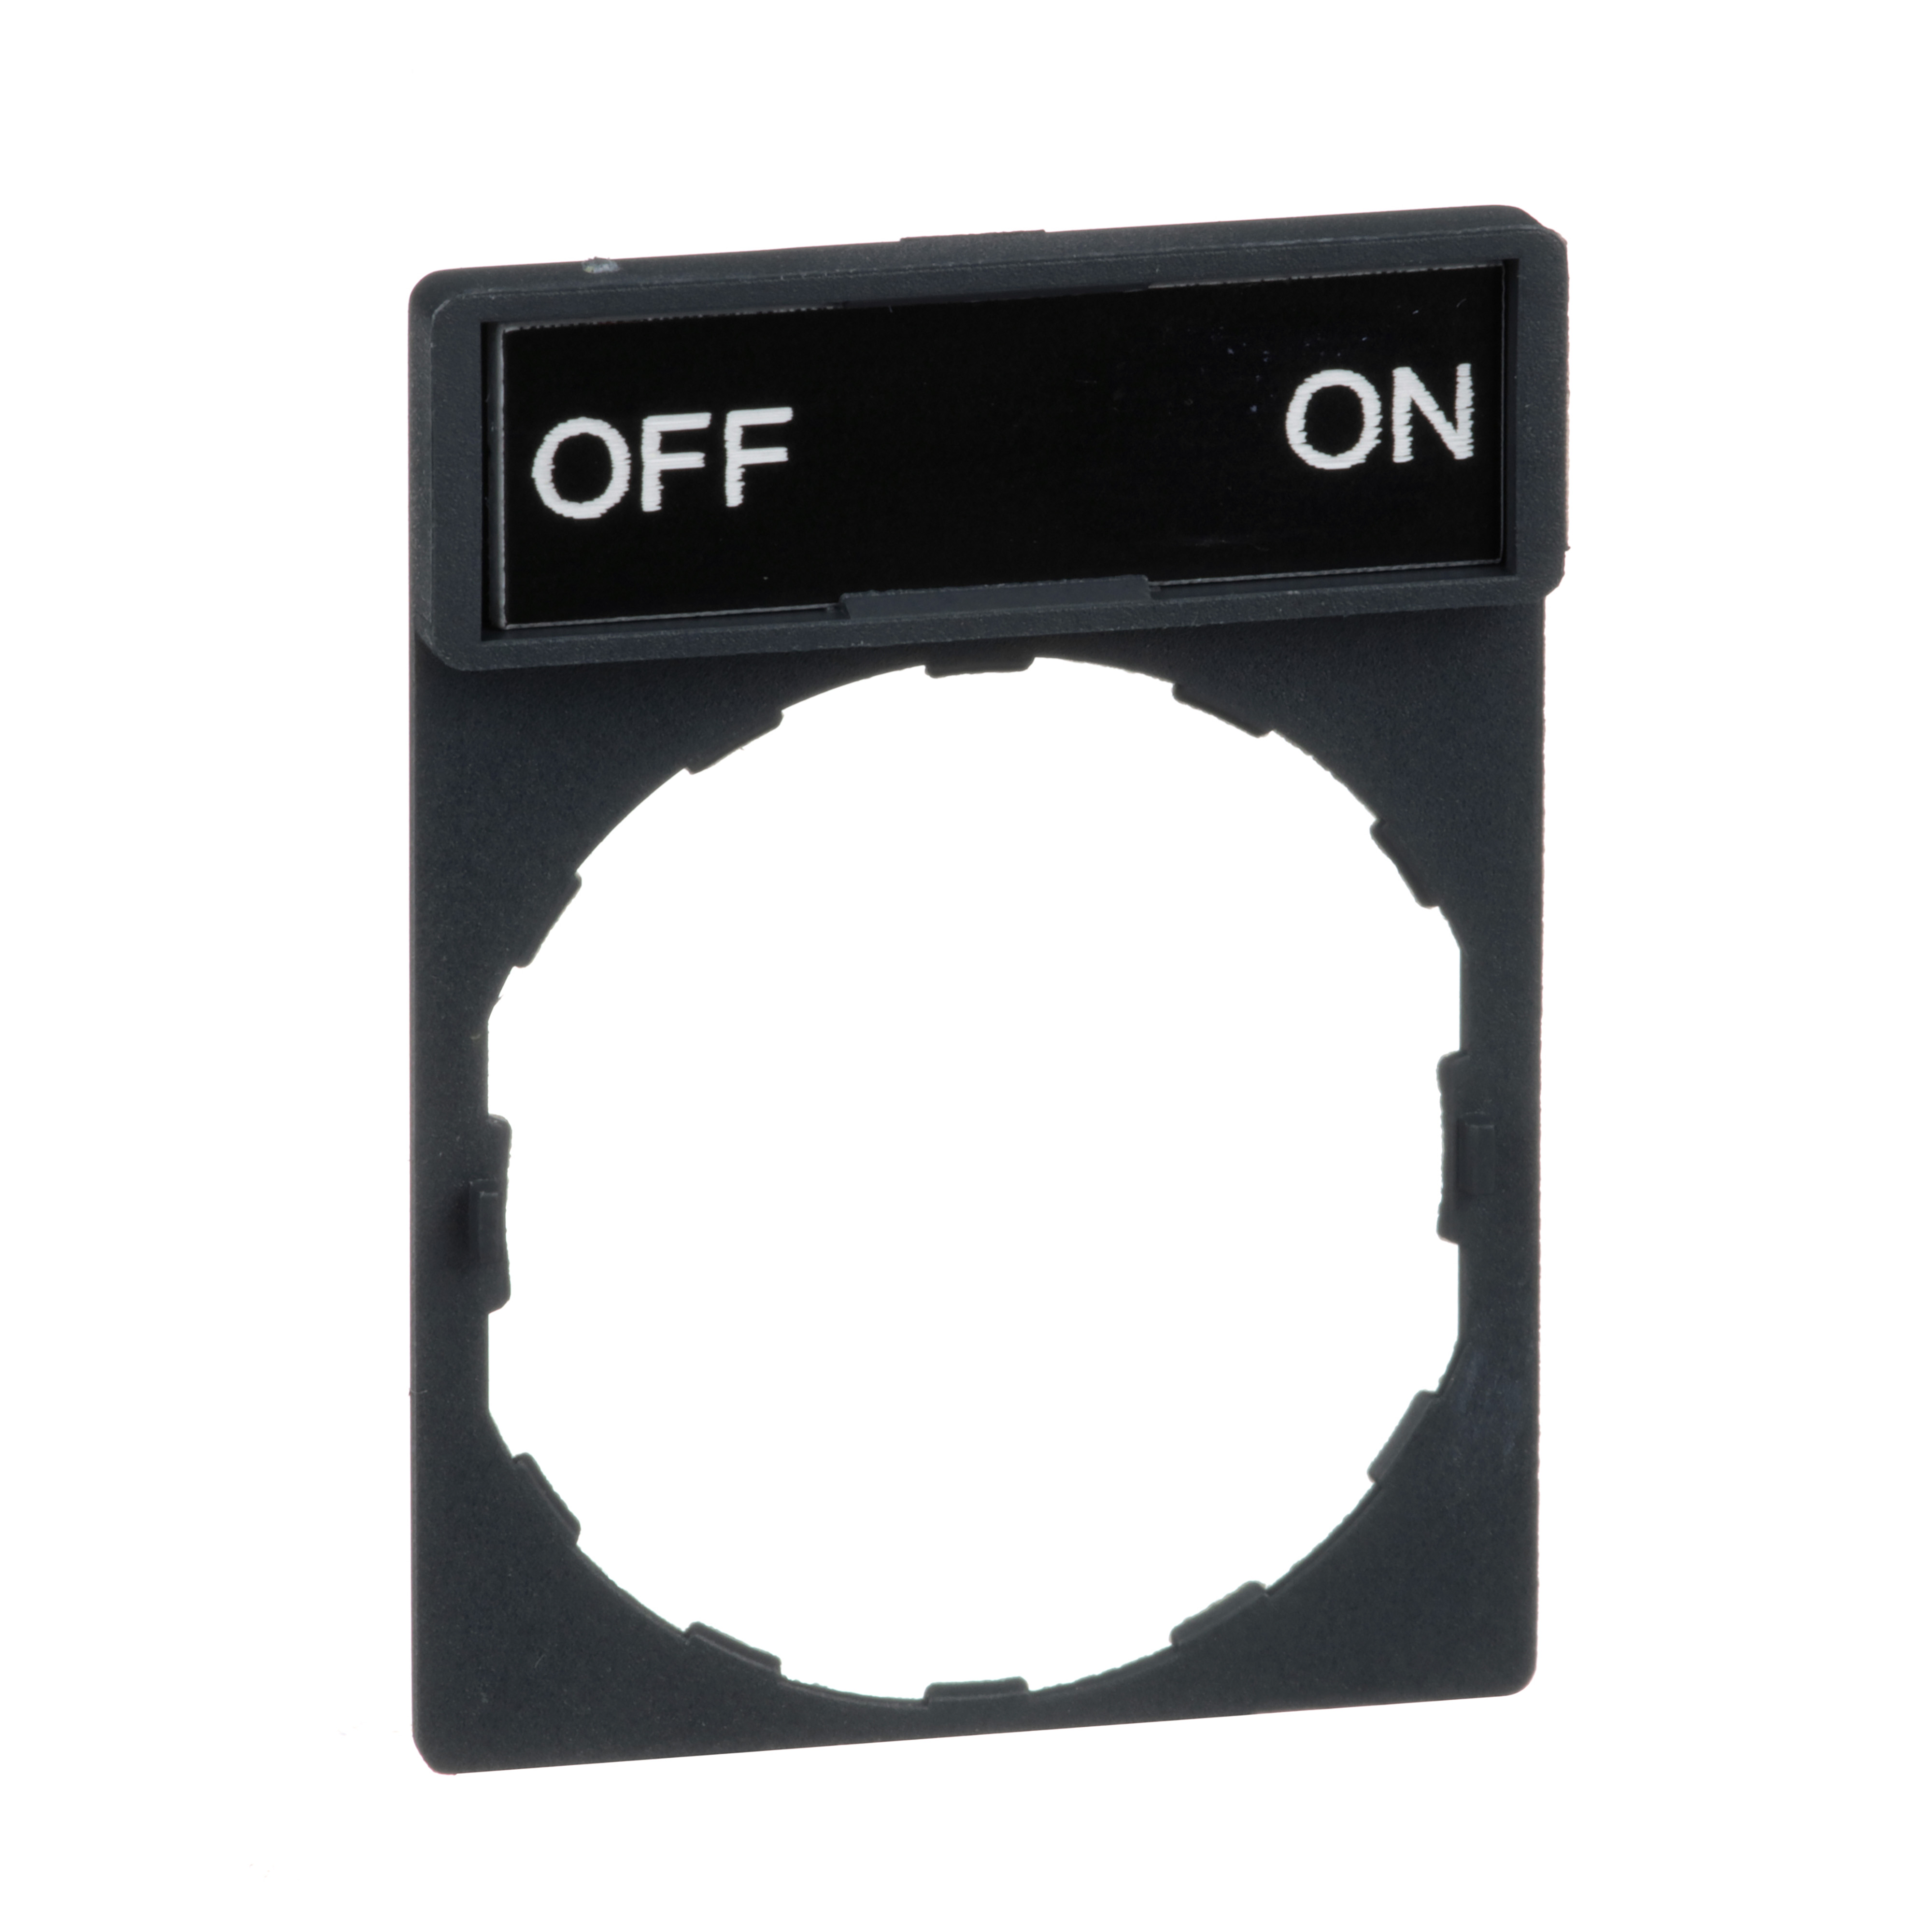 SQUARE D Schneider Electric,STD N/P HOLDER MRKD  OFF - ON,-25 to +70 Degrees C,22mm Round,Black White OFF - ON,Harmony,IP65,IP65,Pushbutton Legend Holder